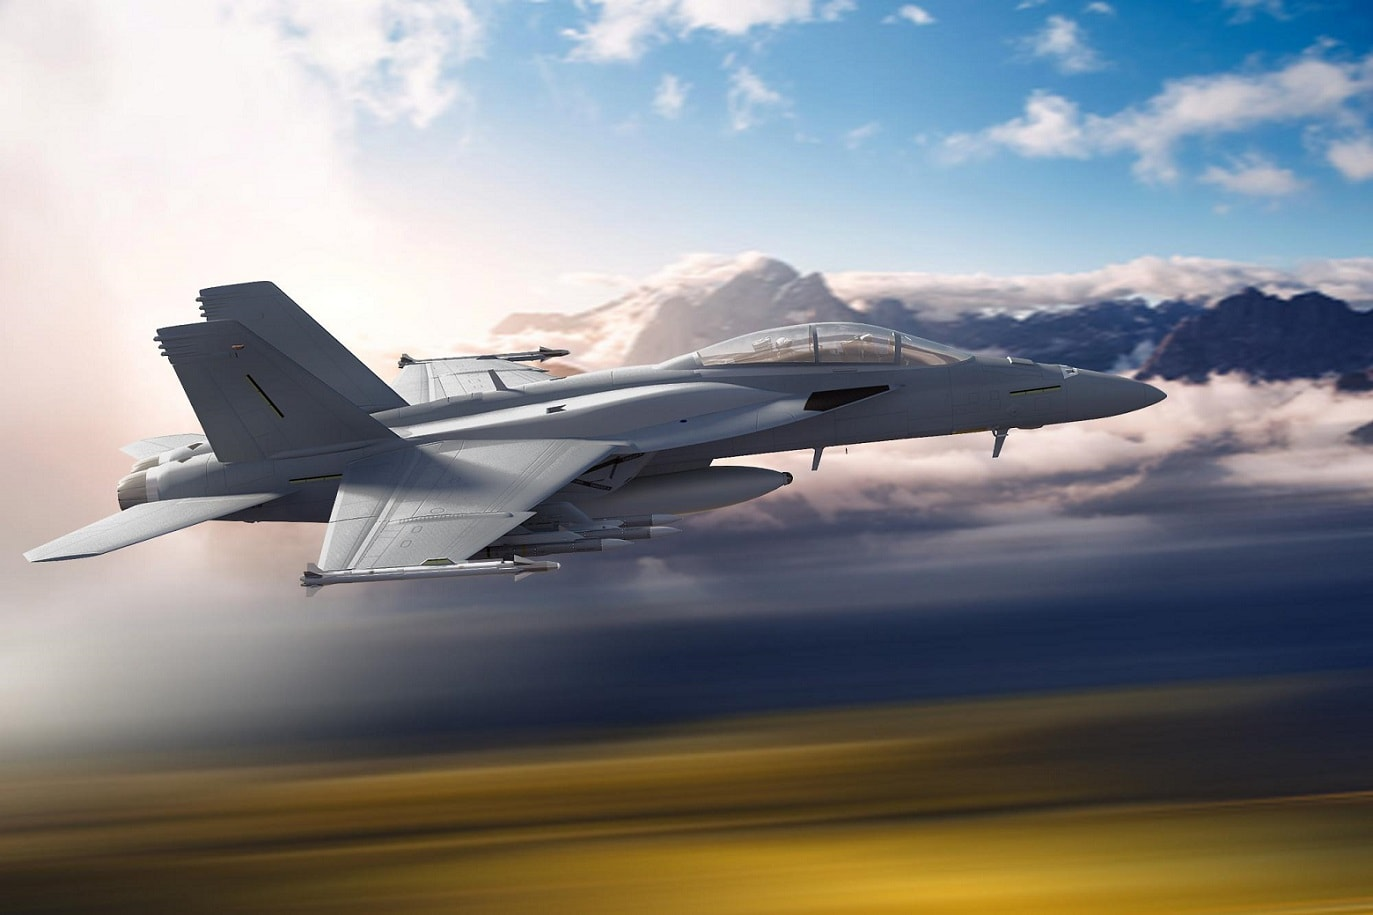 hight resolution of u s aerospace manufacturer boeing co has unveiled the concept of future f a 18 block iii super hornet fighter aircraft during sea air space 2019